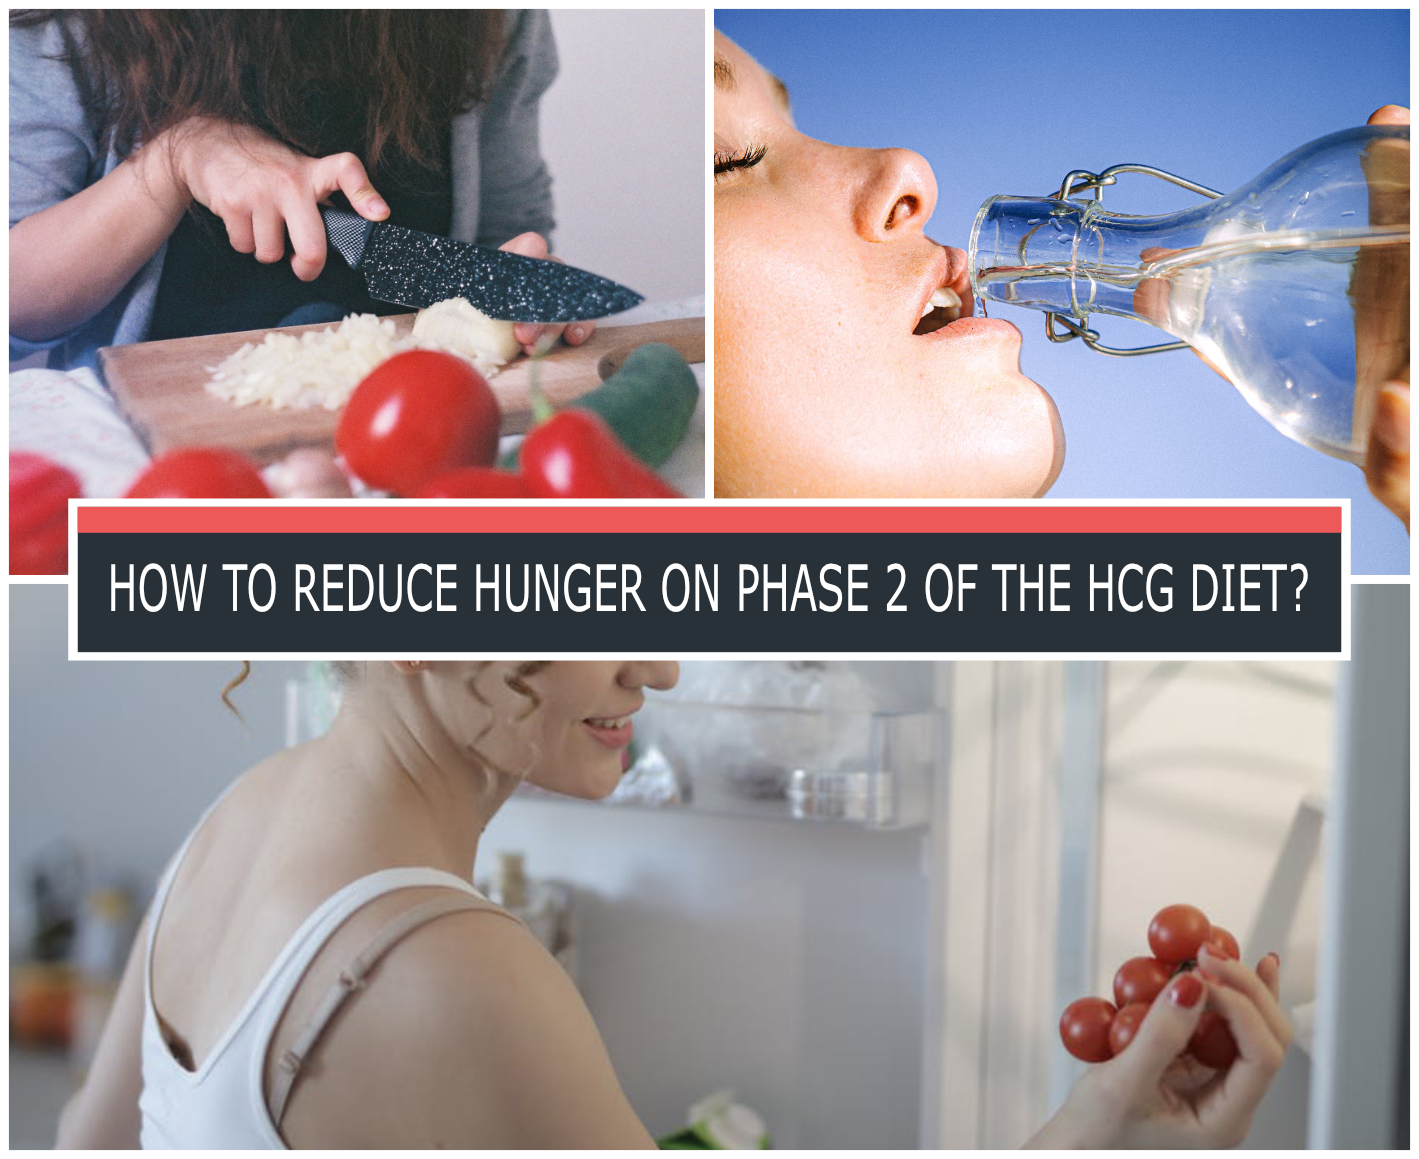 HOW TO REDUCE HUNGER ON PHASE 2 OF THE HCG DIET?